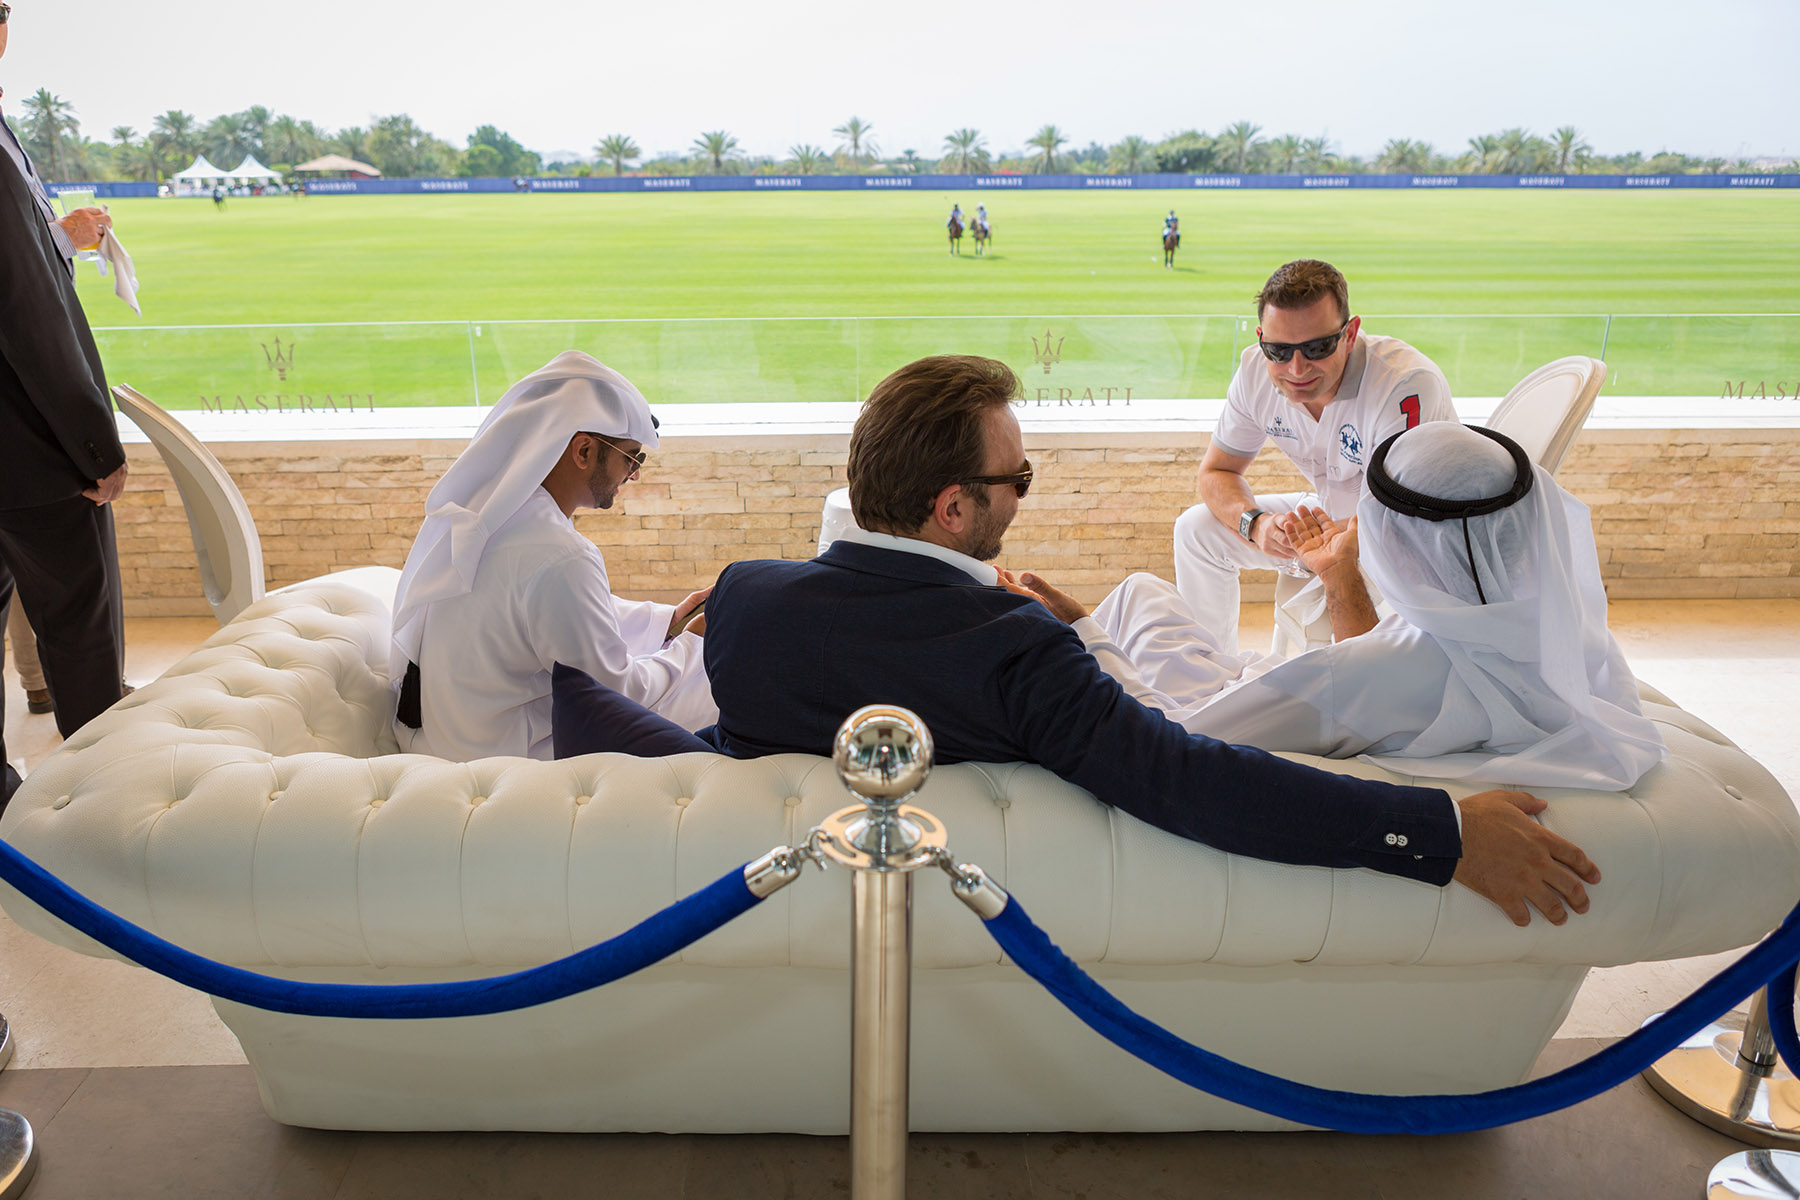 Maserati's CEO enjoying the polo match event by Loesje Kessels Fashion Photographer Dubai